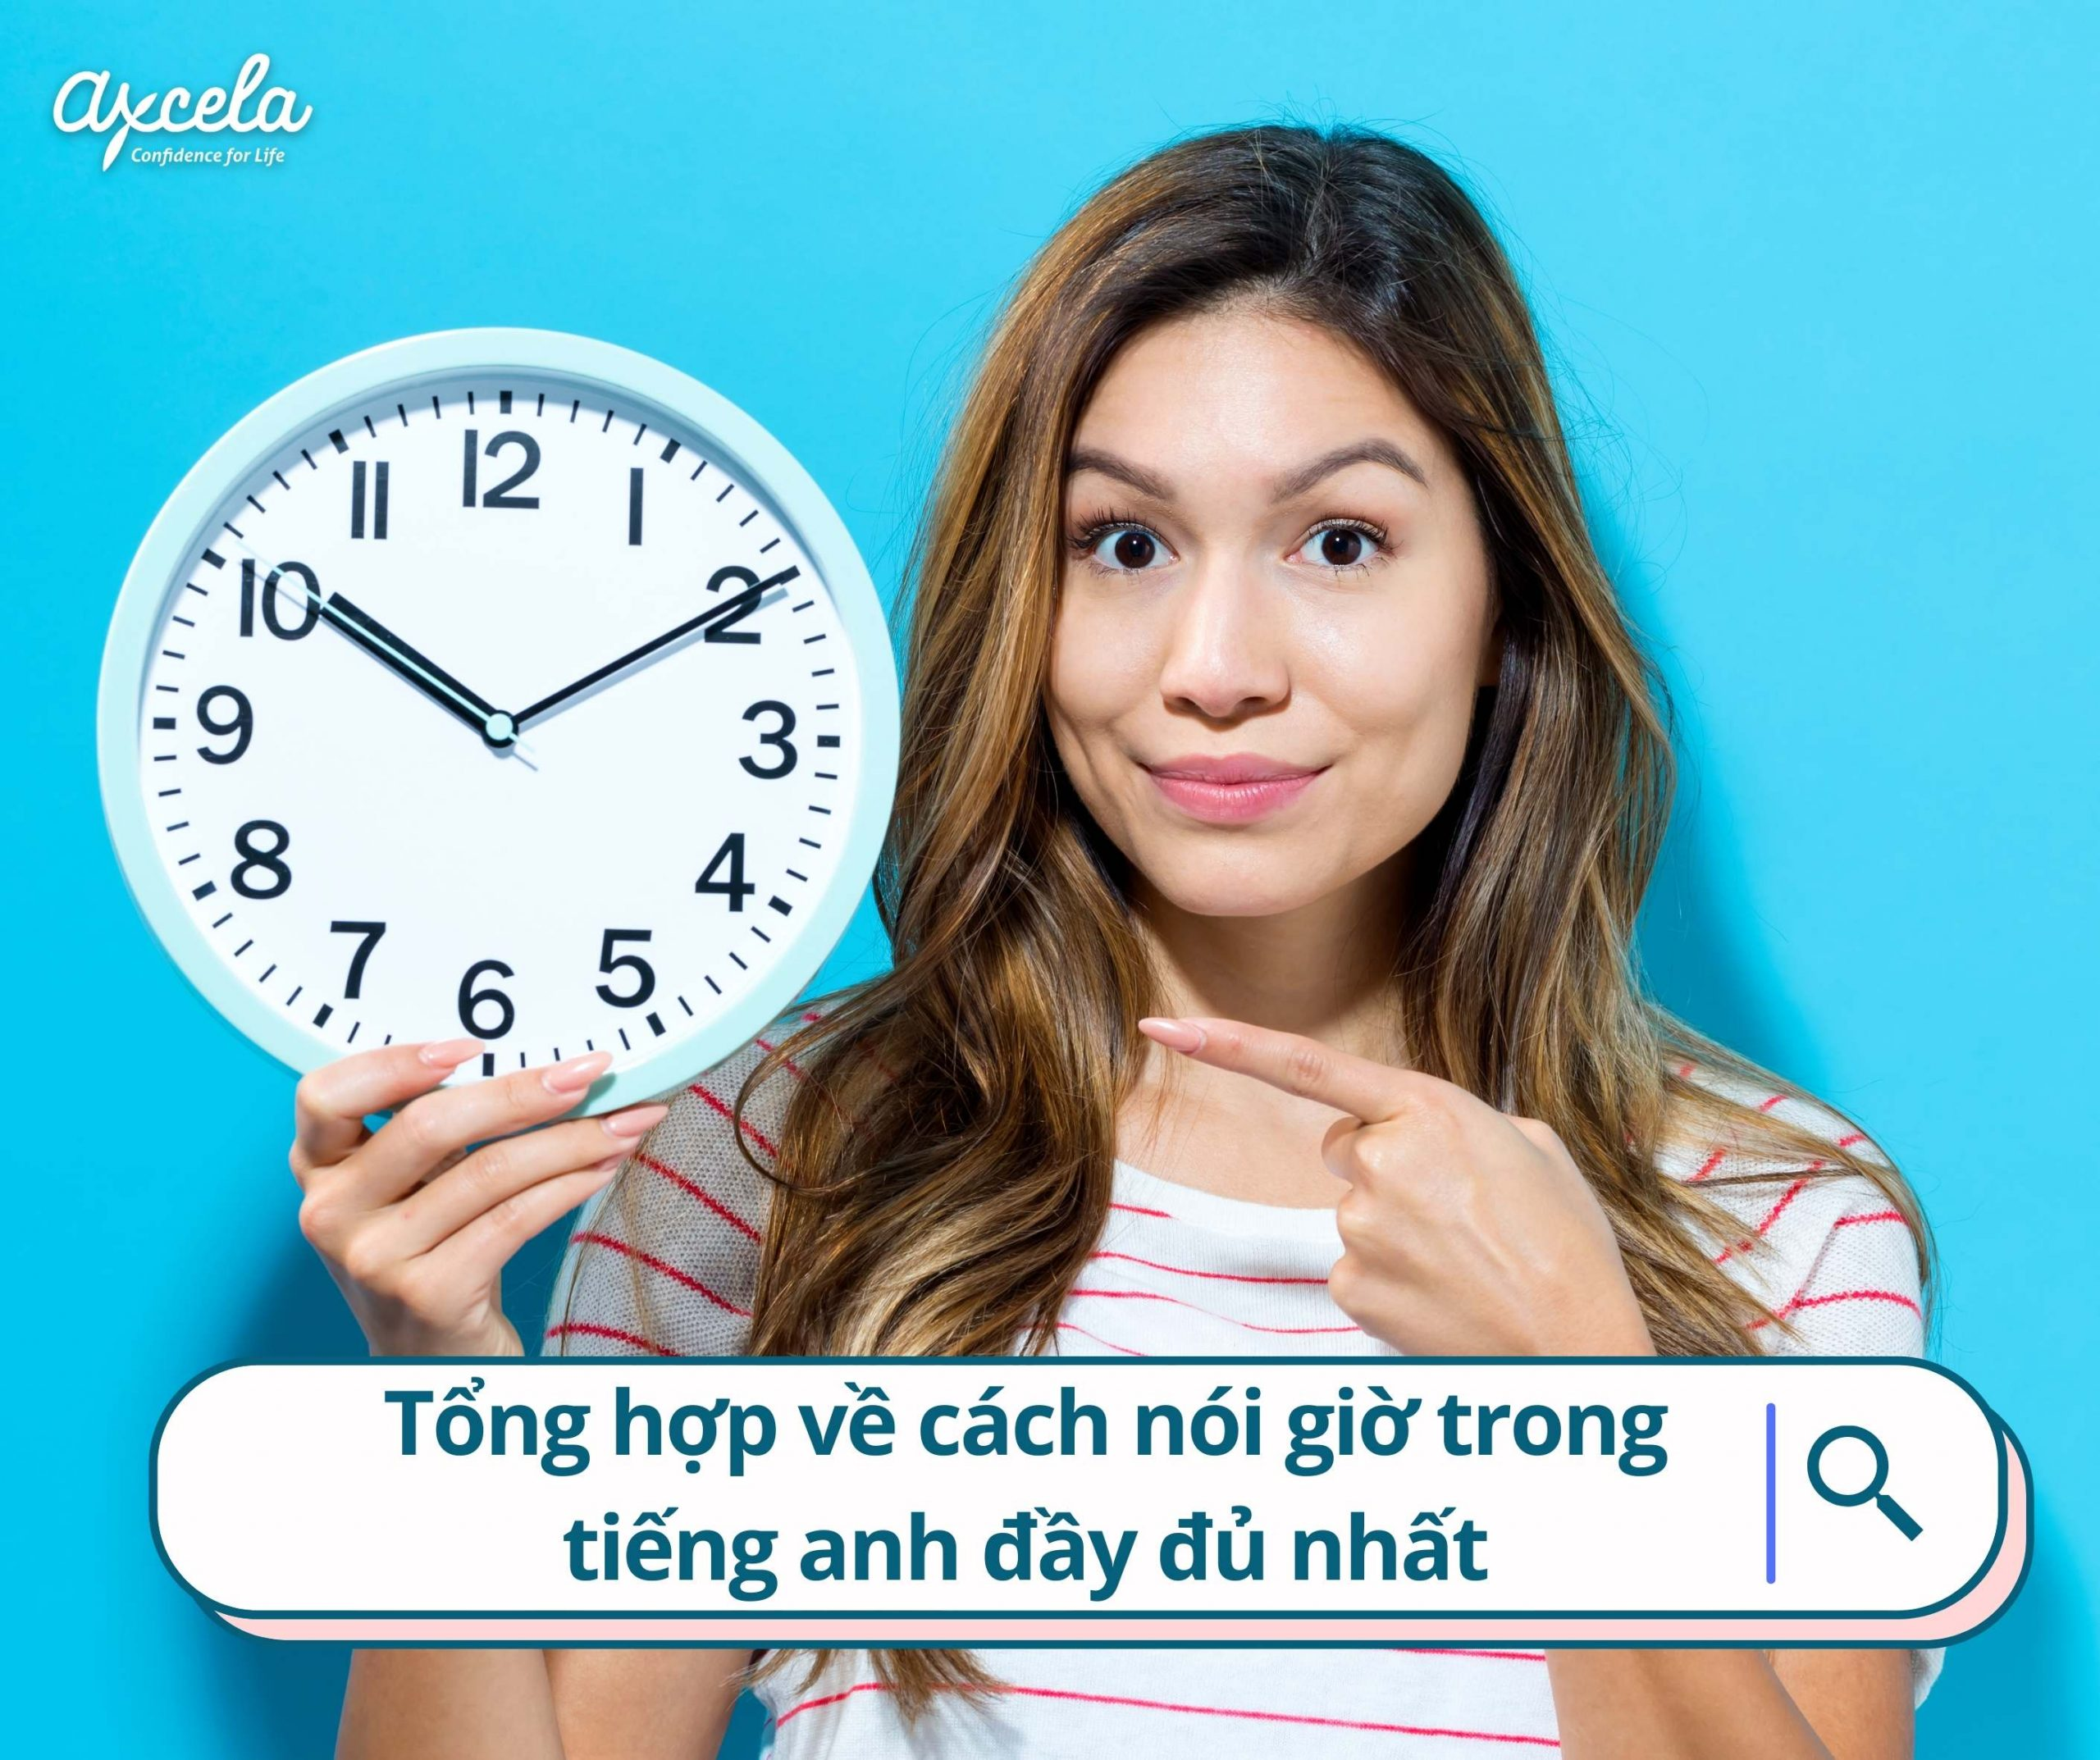 cach-noi-gio-trong-tieng-anh-day-du